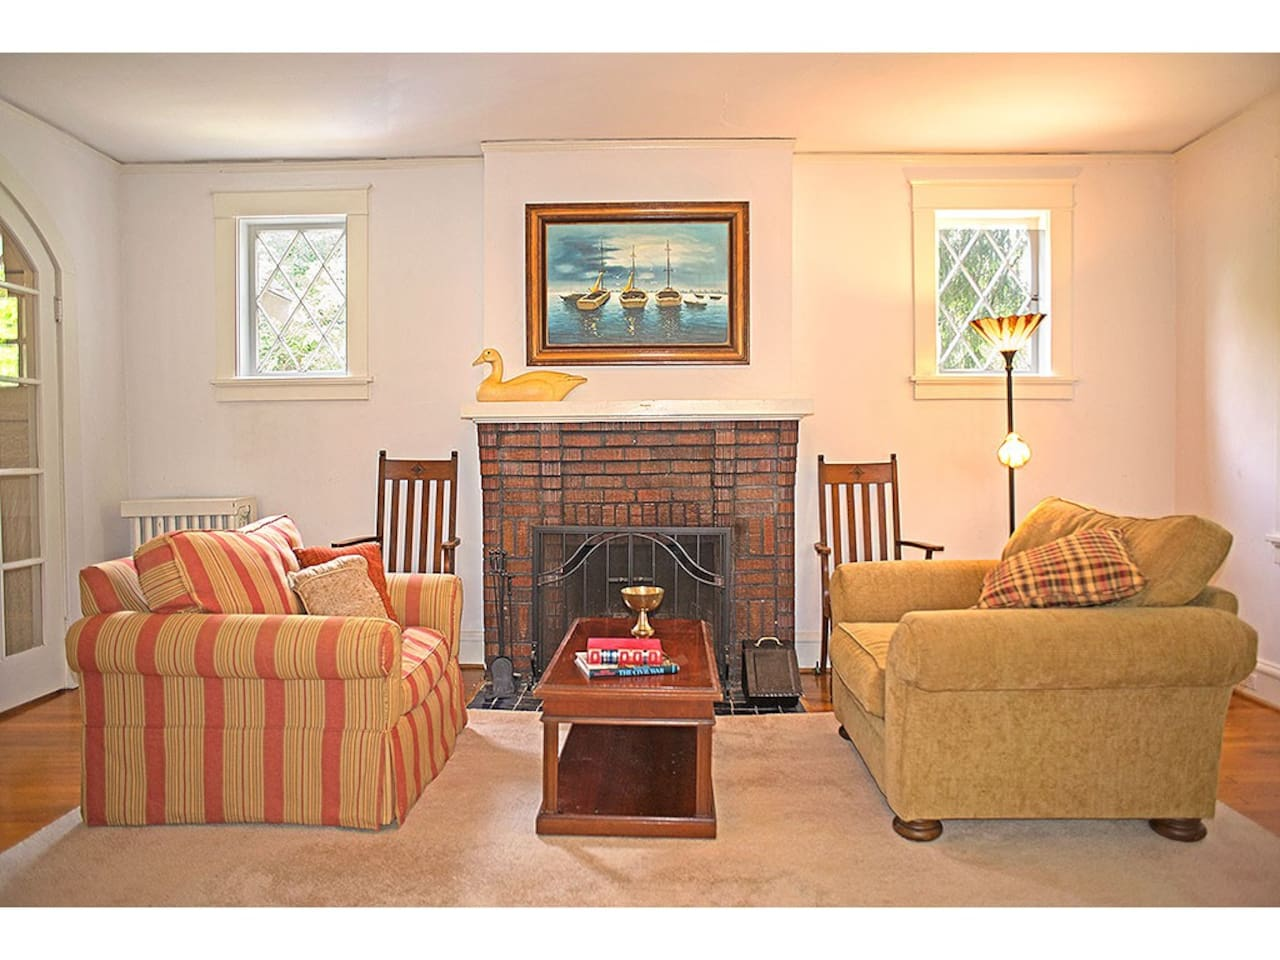 A cozy area for conversation or relaxation near the living room fireplace.